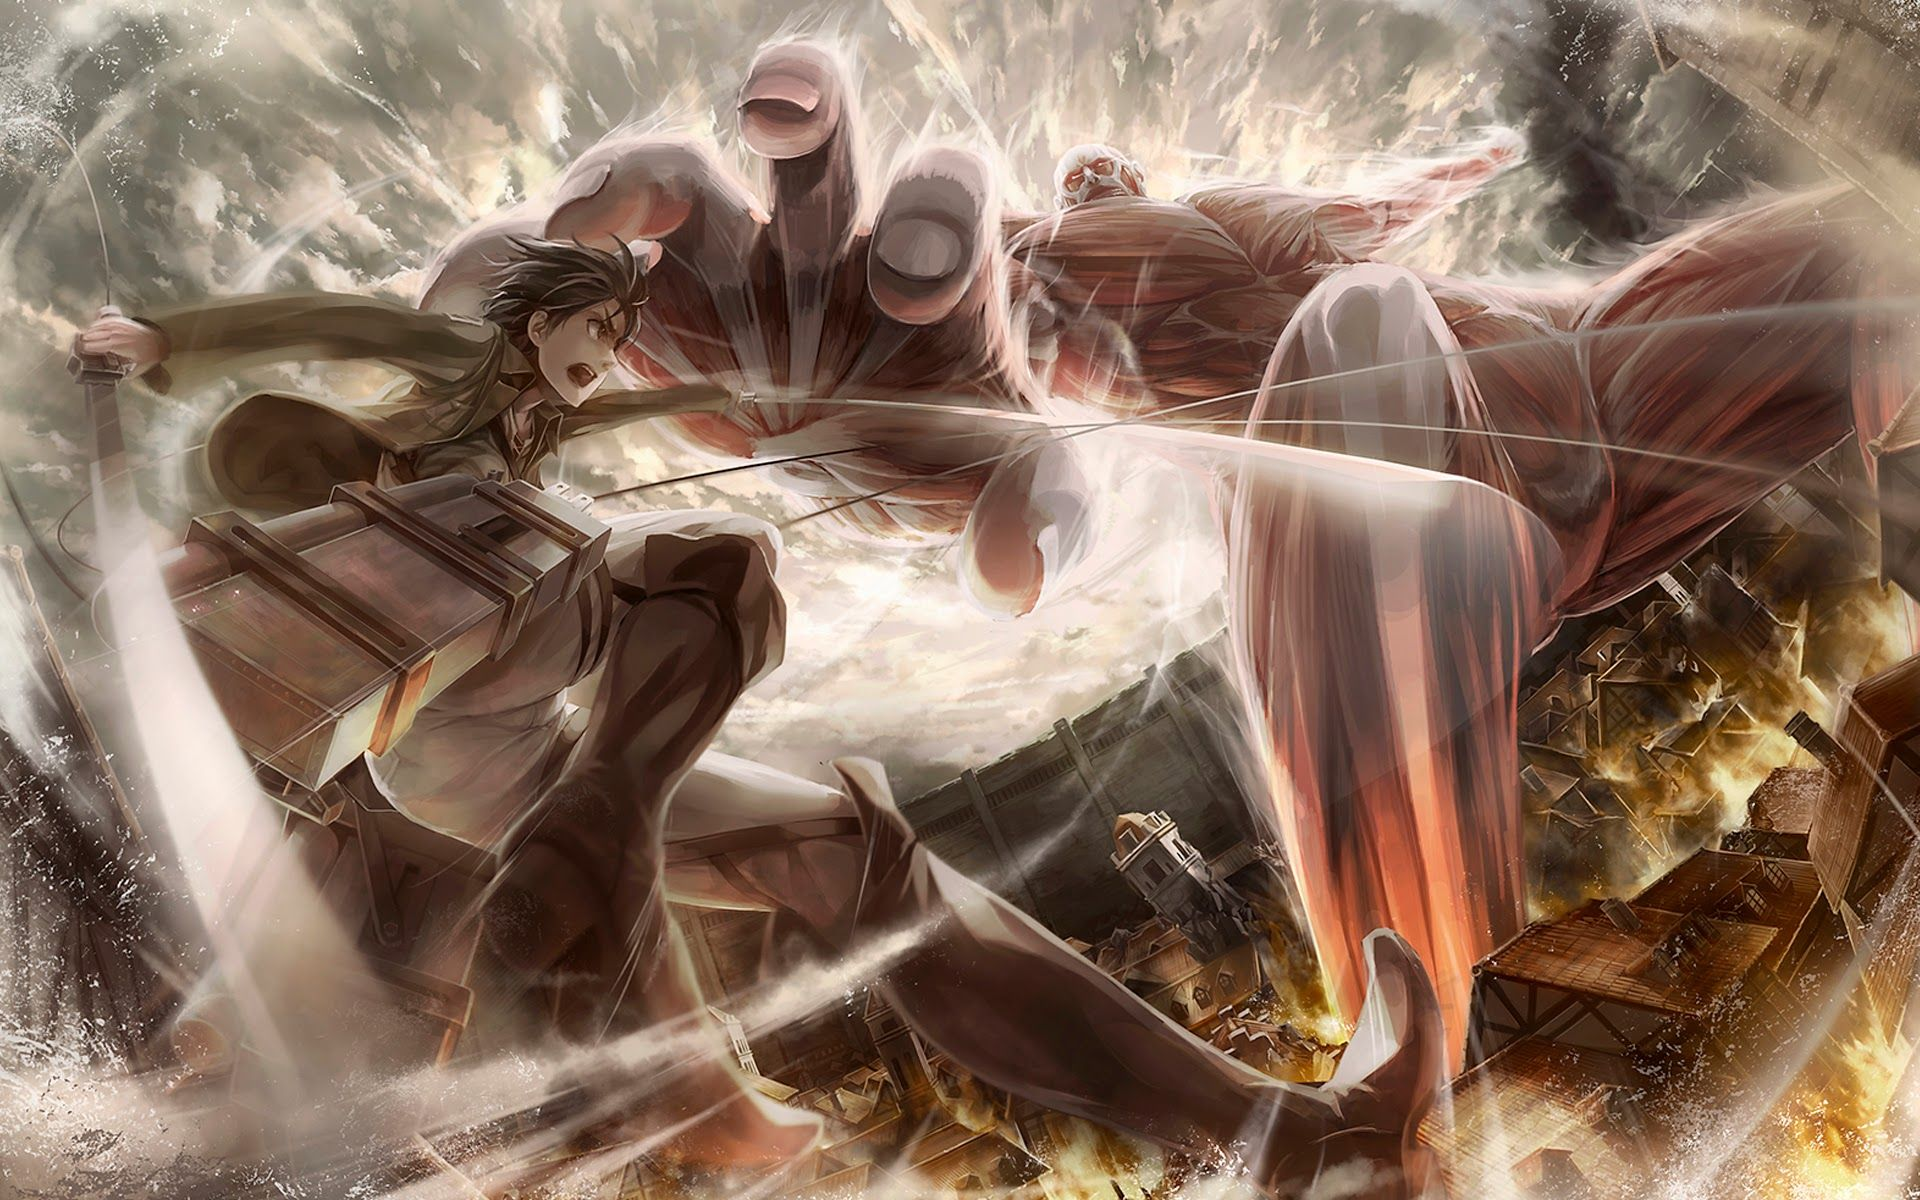 Colossal Titan Vs Eren Jaeger Attack On Titan Hd Wallpaper 1920x1200 Jpg 1920 1200 Attack On Titan Anime Titans